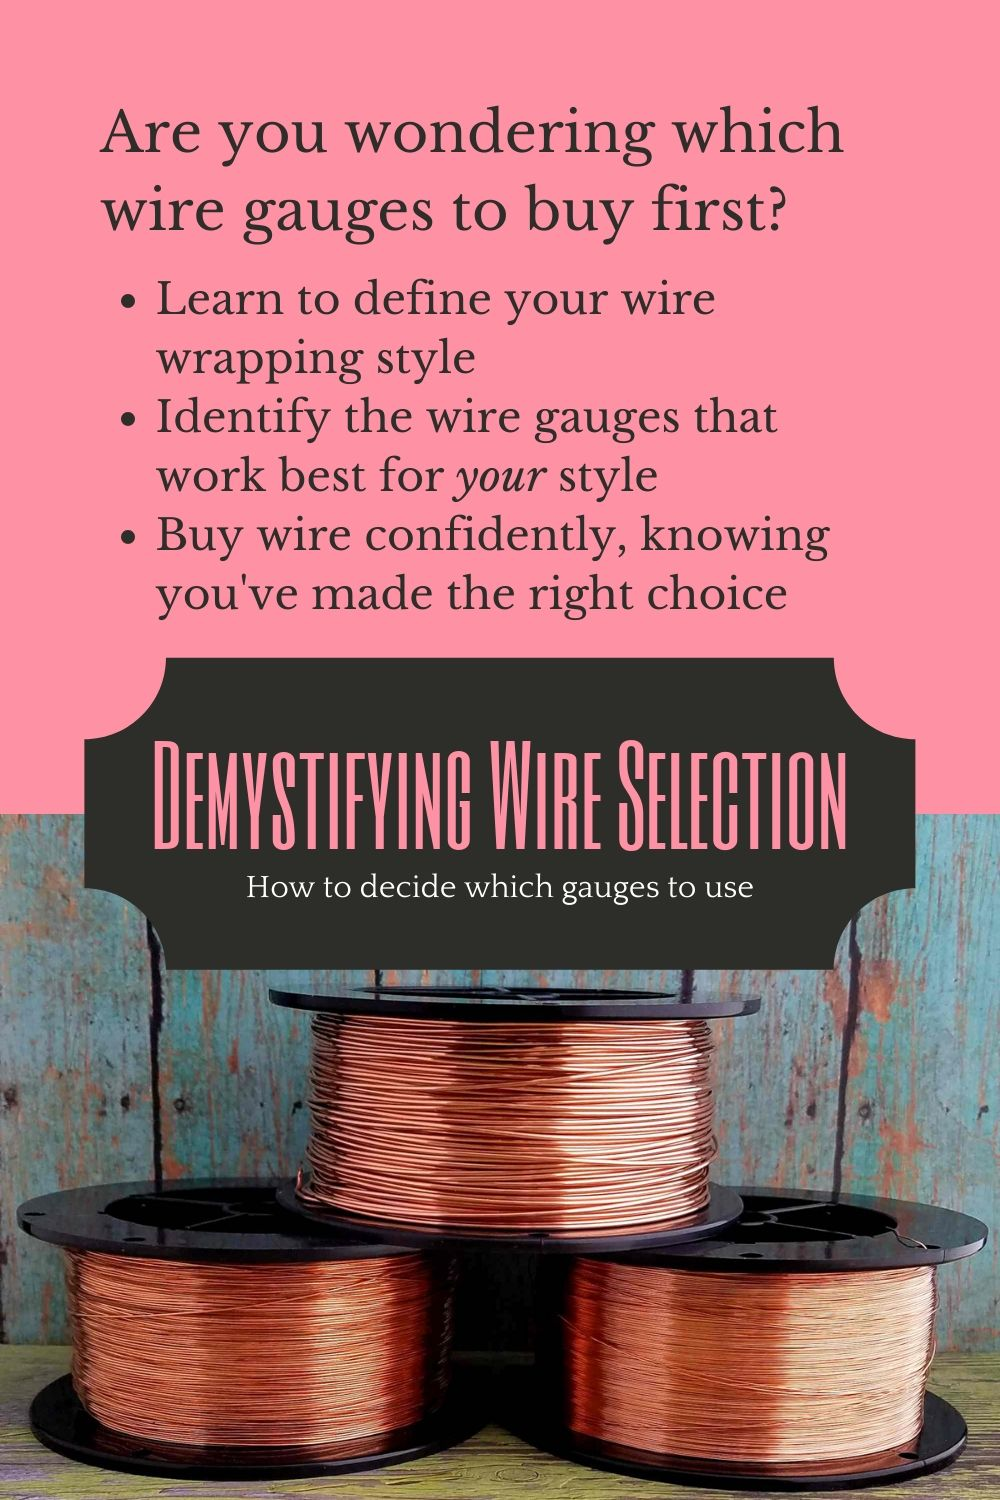 So, you want to make wire jewelry. And now you're wondering which wire gauges you should invest in first? You'll find the answer to that question (and more) in this post where I demystify the process of selecting the right wire gauges.